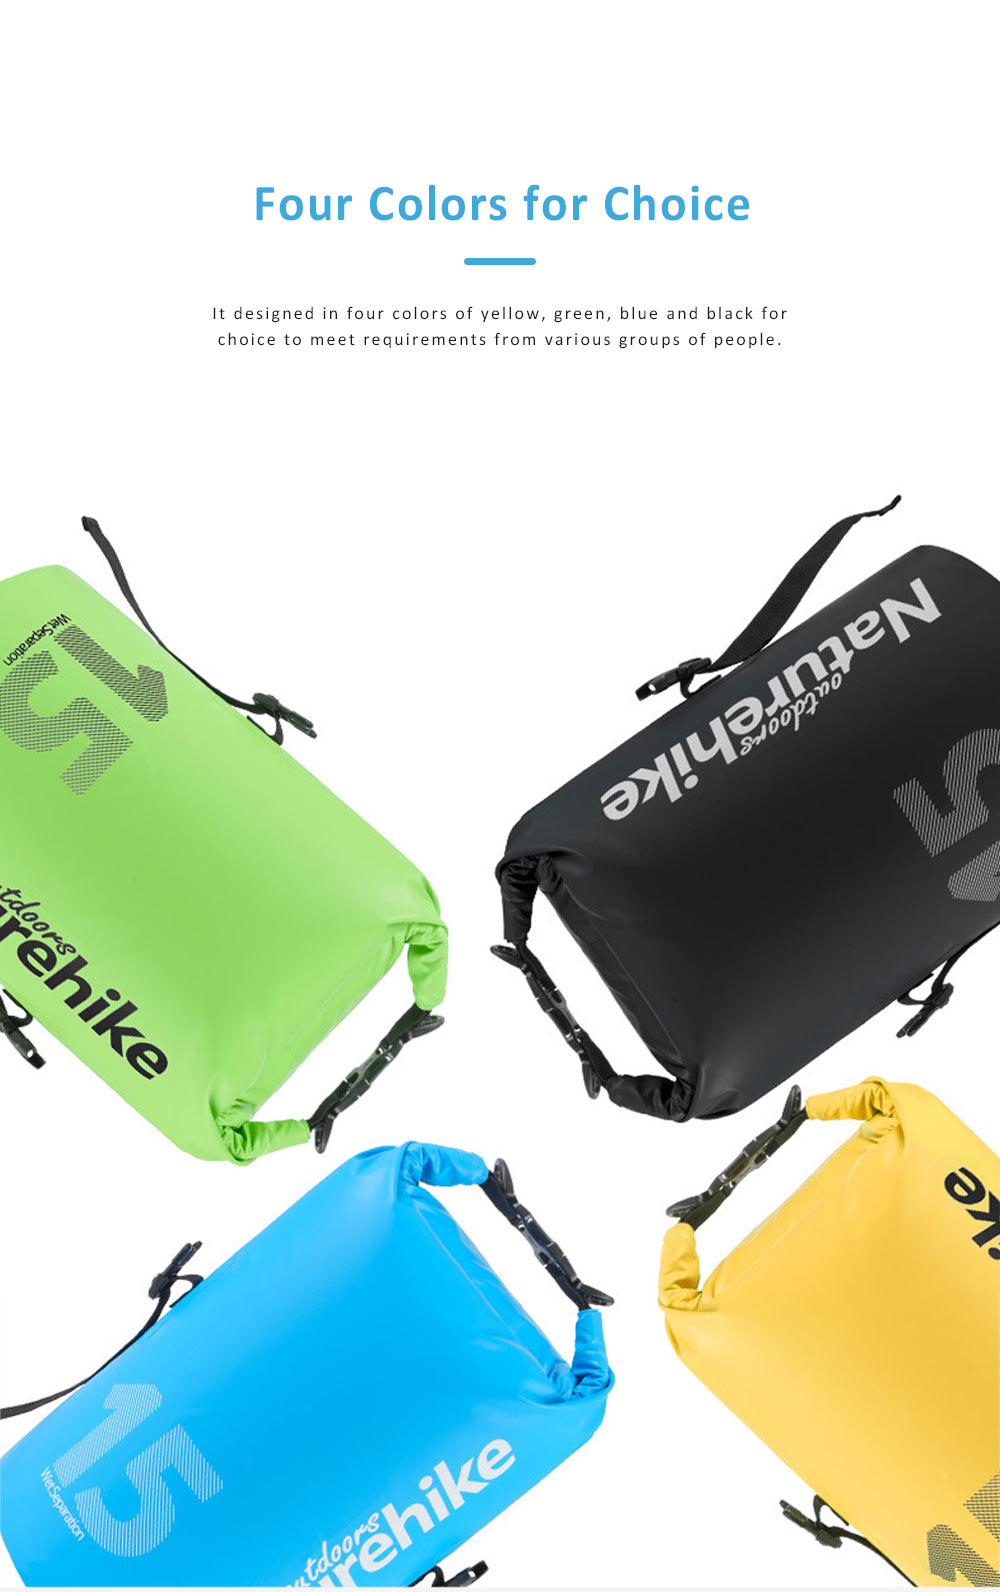 Wet Dry Separation Waterproof Bag for Outdoor Activities, Floating, Swimming, Diving, Beach Used Showerproof Large-capacity Storage Bag 5